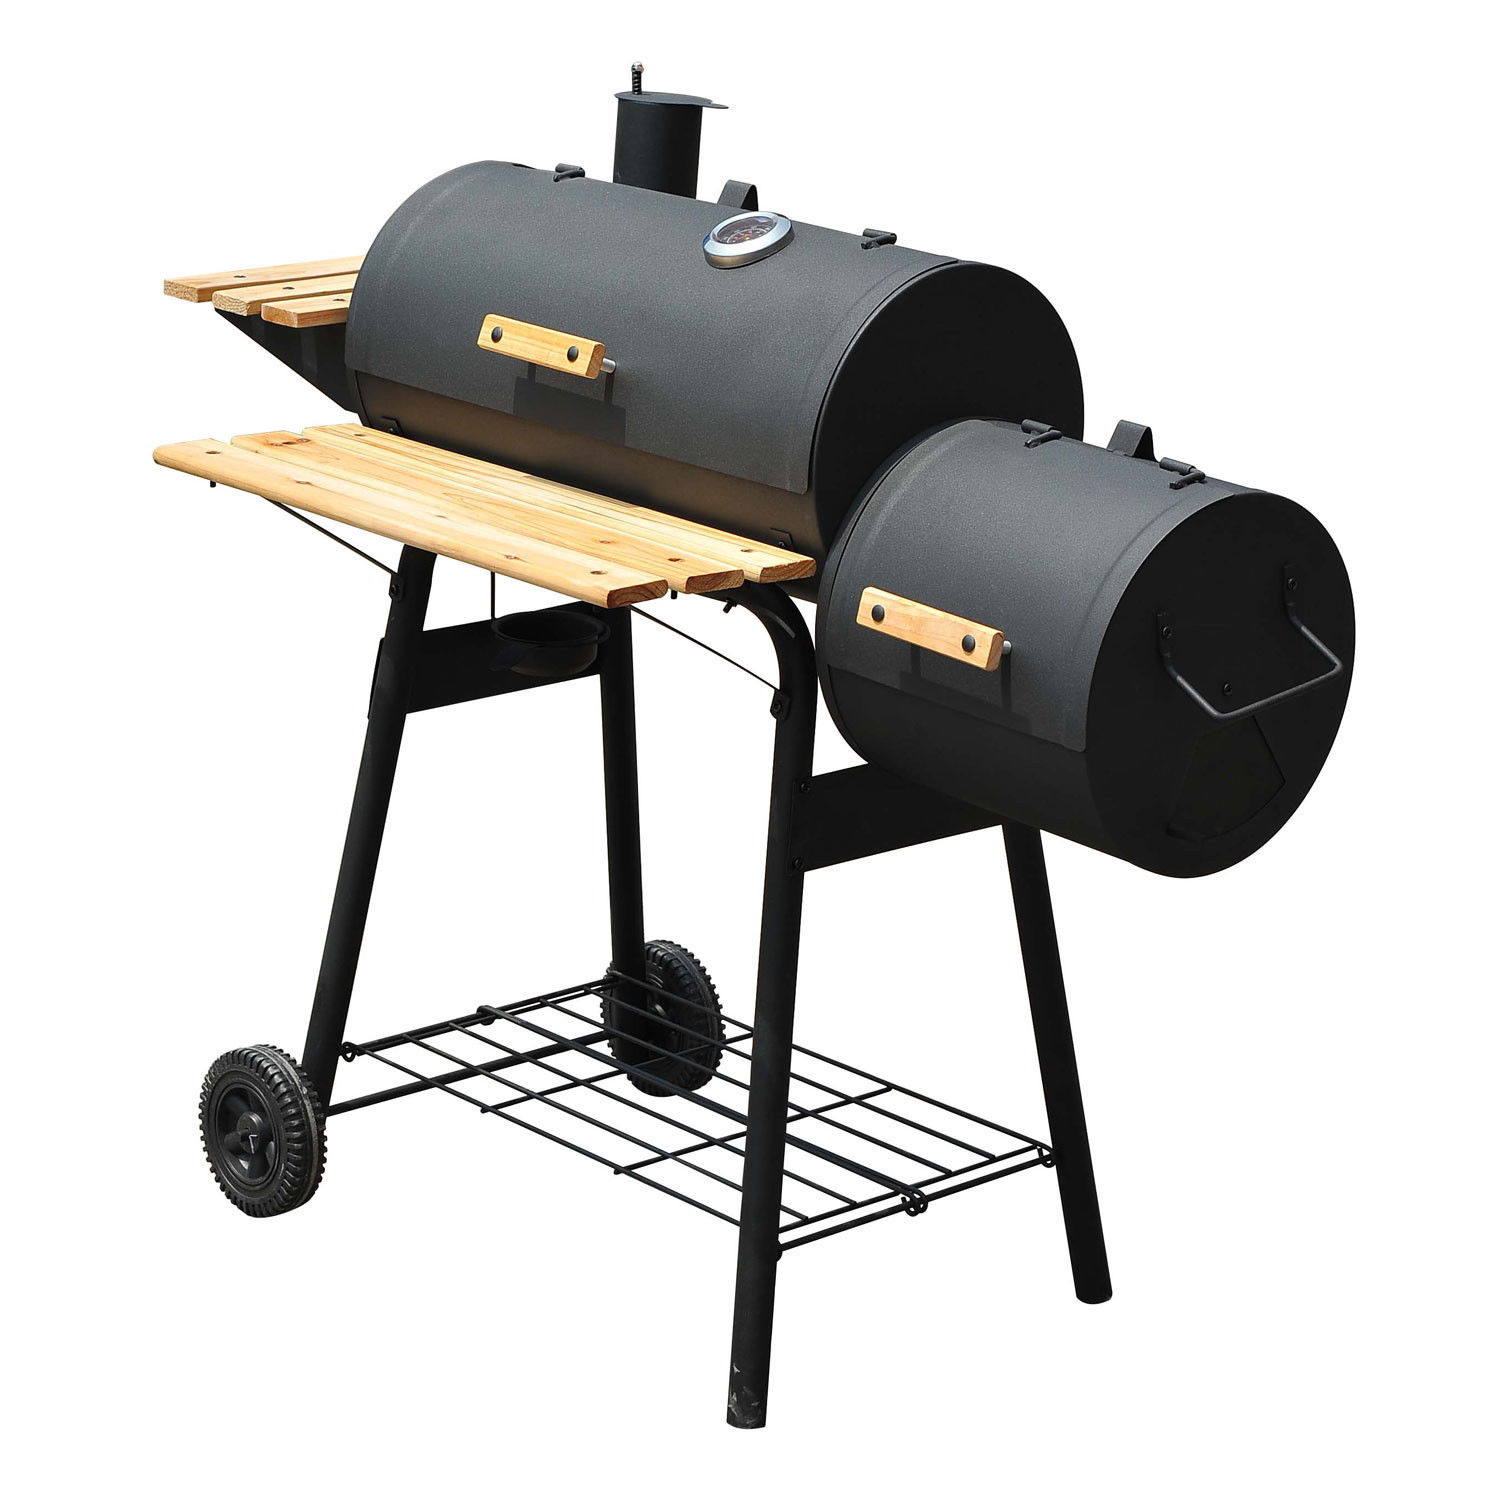 48 inch charcoal barbecue grill patio smoker. Black Bedroom Furniture Sets. Home Design Ideas